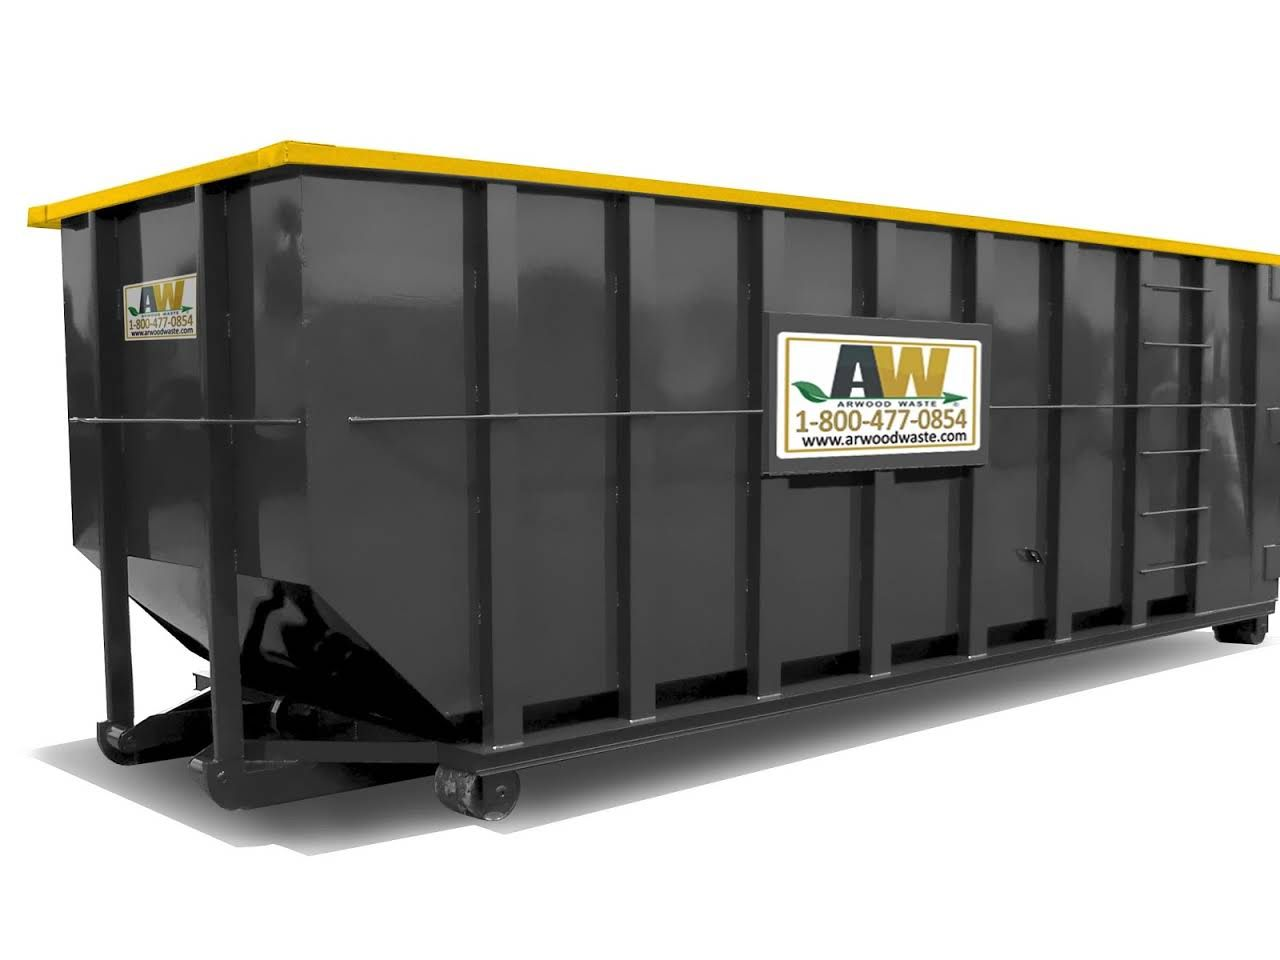 Arwood Waste Management Services Aw Management Services 800 477 0854 Get Directions Waste Management Services Dumpster Rental Garbage Dumpster